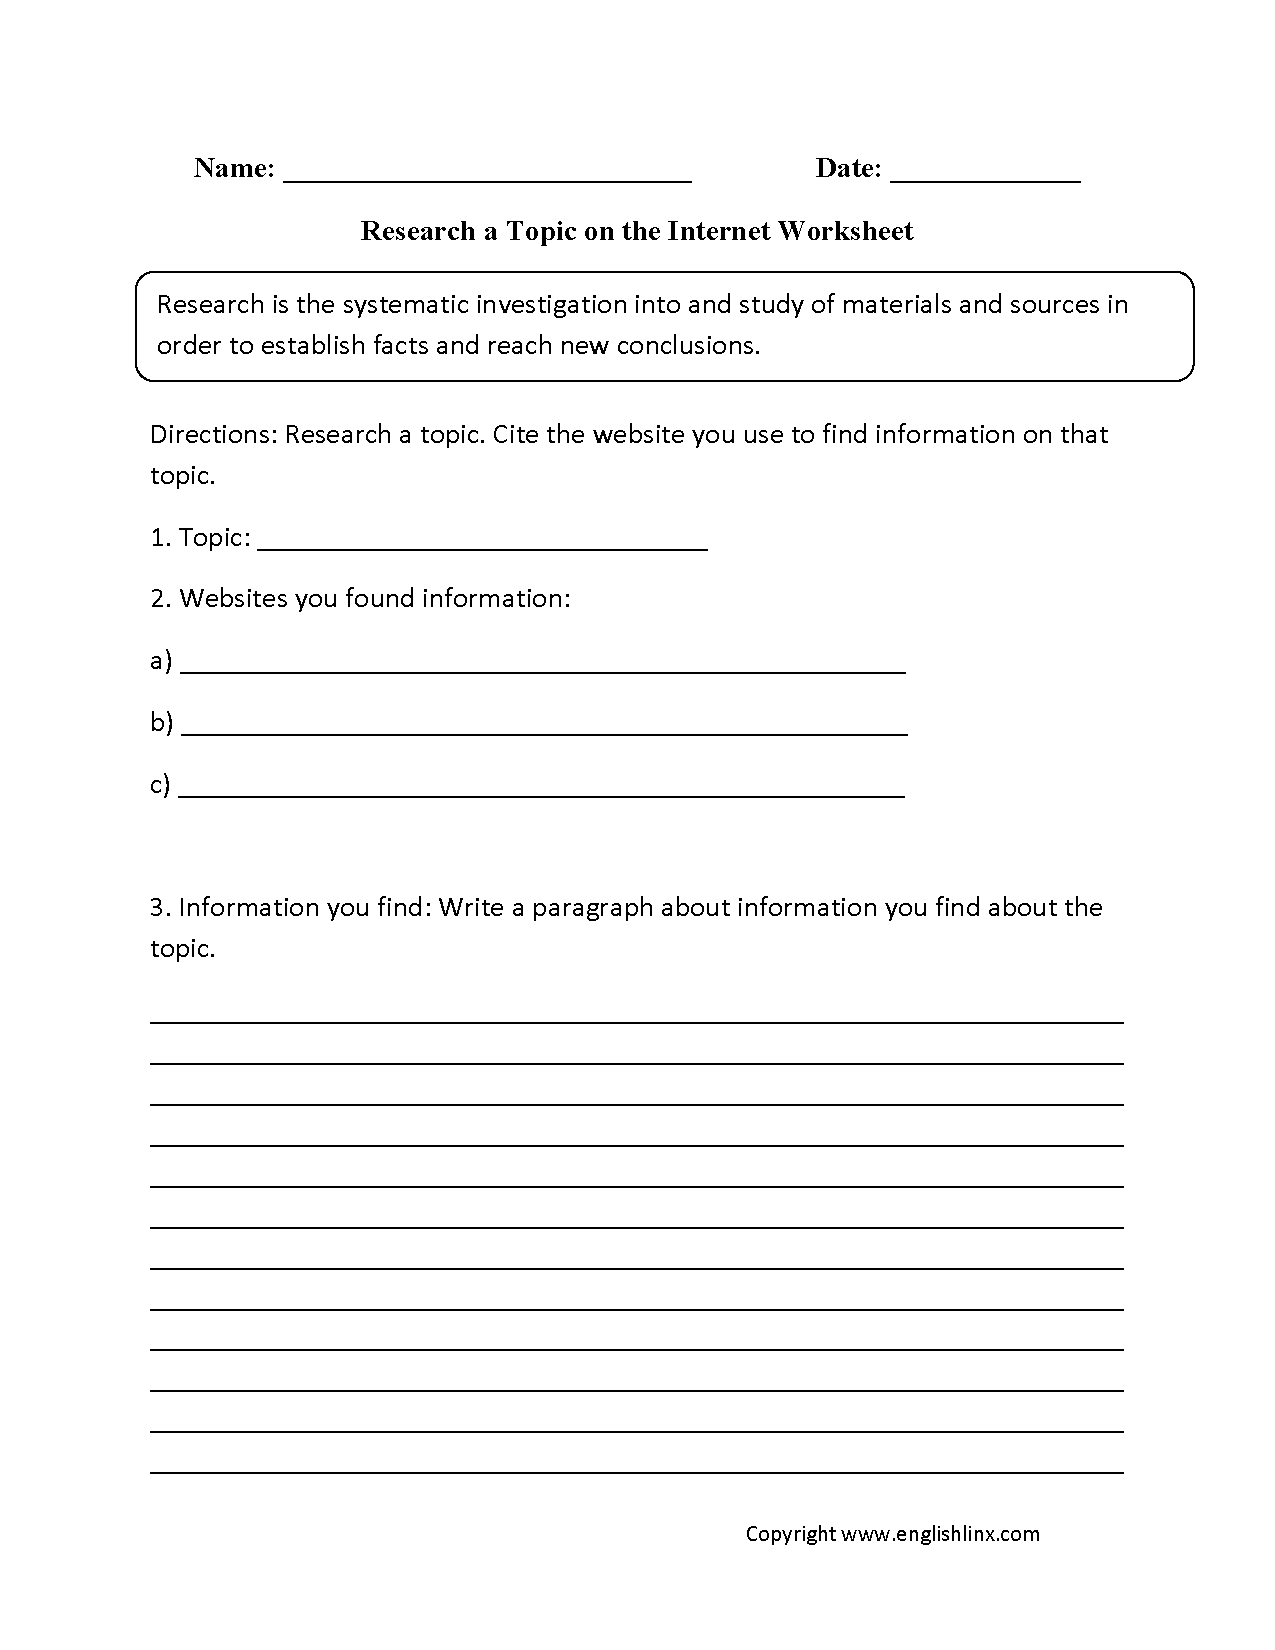 Aldiablosus  Pleasant Englishlinxcom  Research Worksheets With Inspiring On The Internet Worksheet With Astonishing Post Acute Withdrawal Syndrome Worksheet Also Finding The Gcf Worksheet In Addition Surface Area Of A Cylinder Worksheet And Surface Area And Volume Worksheet As Well As Free St Grade Worksheets Additionally Nd Grade Comprehension Worksheets From Englishlinxcom With Aldiablosus  Inspiring Englishlinxcom  Research Worksheets With Astonishing On The Internet Worksheet And Pleasant Post Acute Withdrawal Syndrome Worksheet Also Finding The Gcf Worksheet In Addition Surface Area Of A Cylinder Worksheet From Englishlinxcom